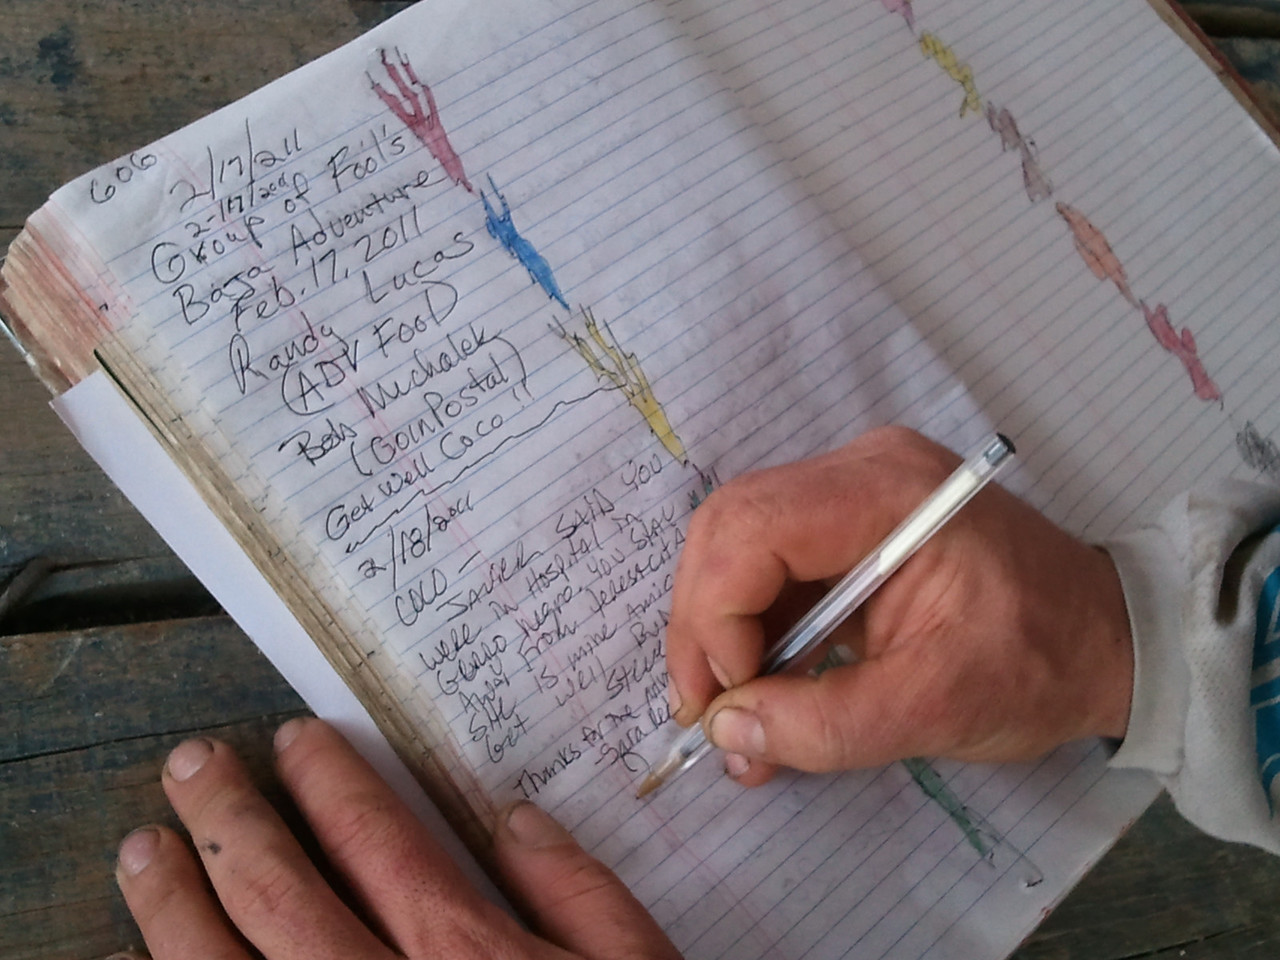 signing coco's journal. note coco's doodling, he is known to doodle in the log books.